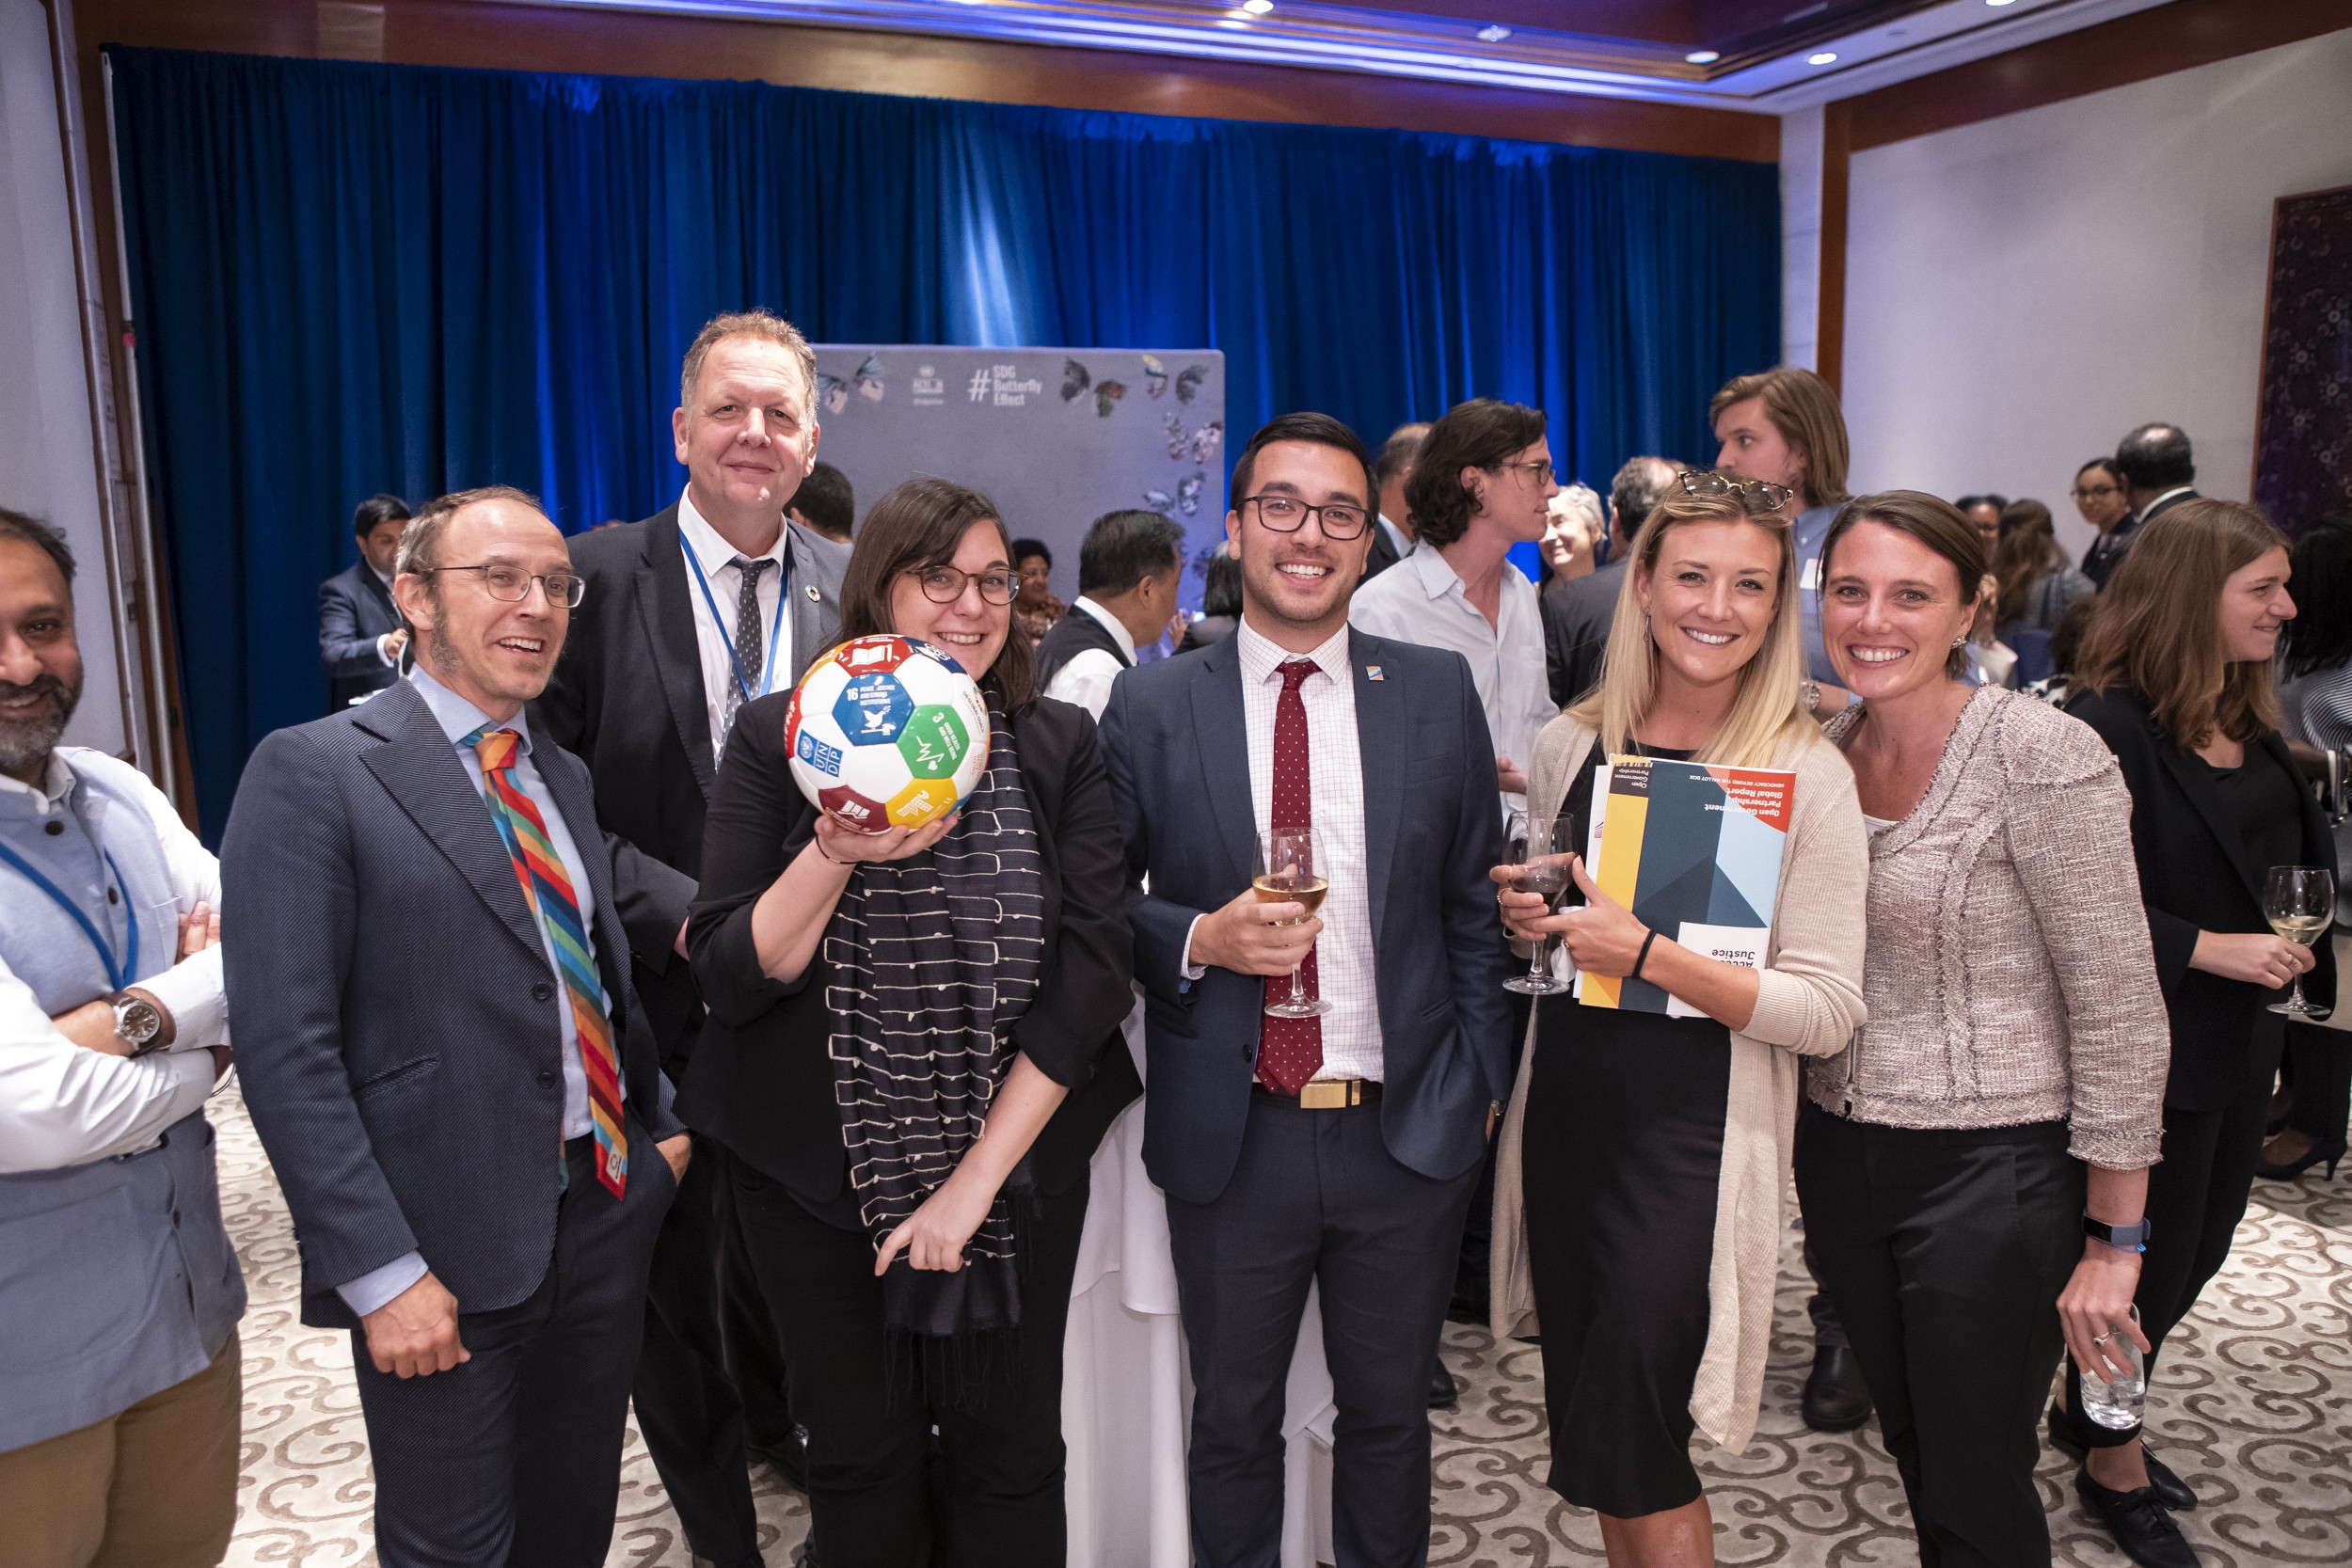 A group of six individuals at the evening reception, one of which is holding an SDG soccer ball.